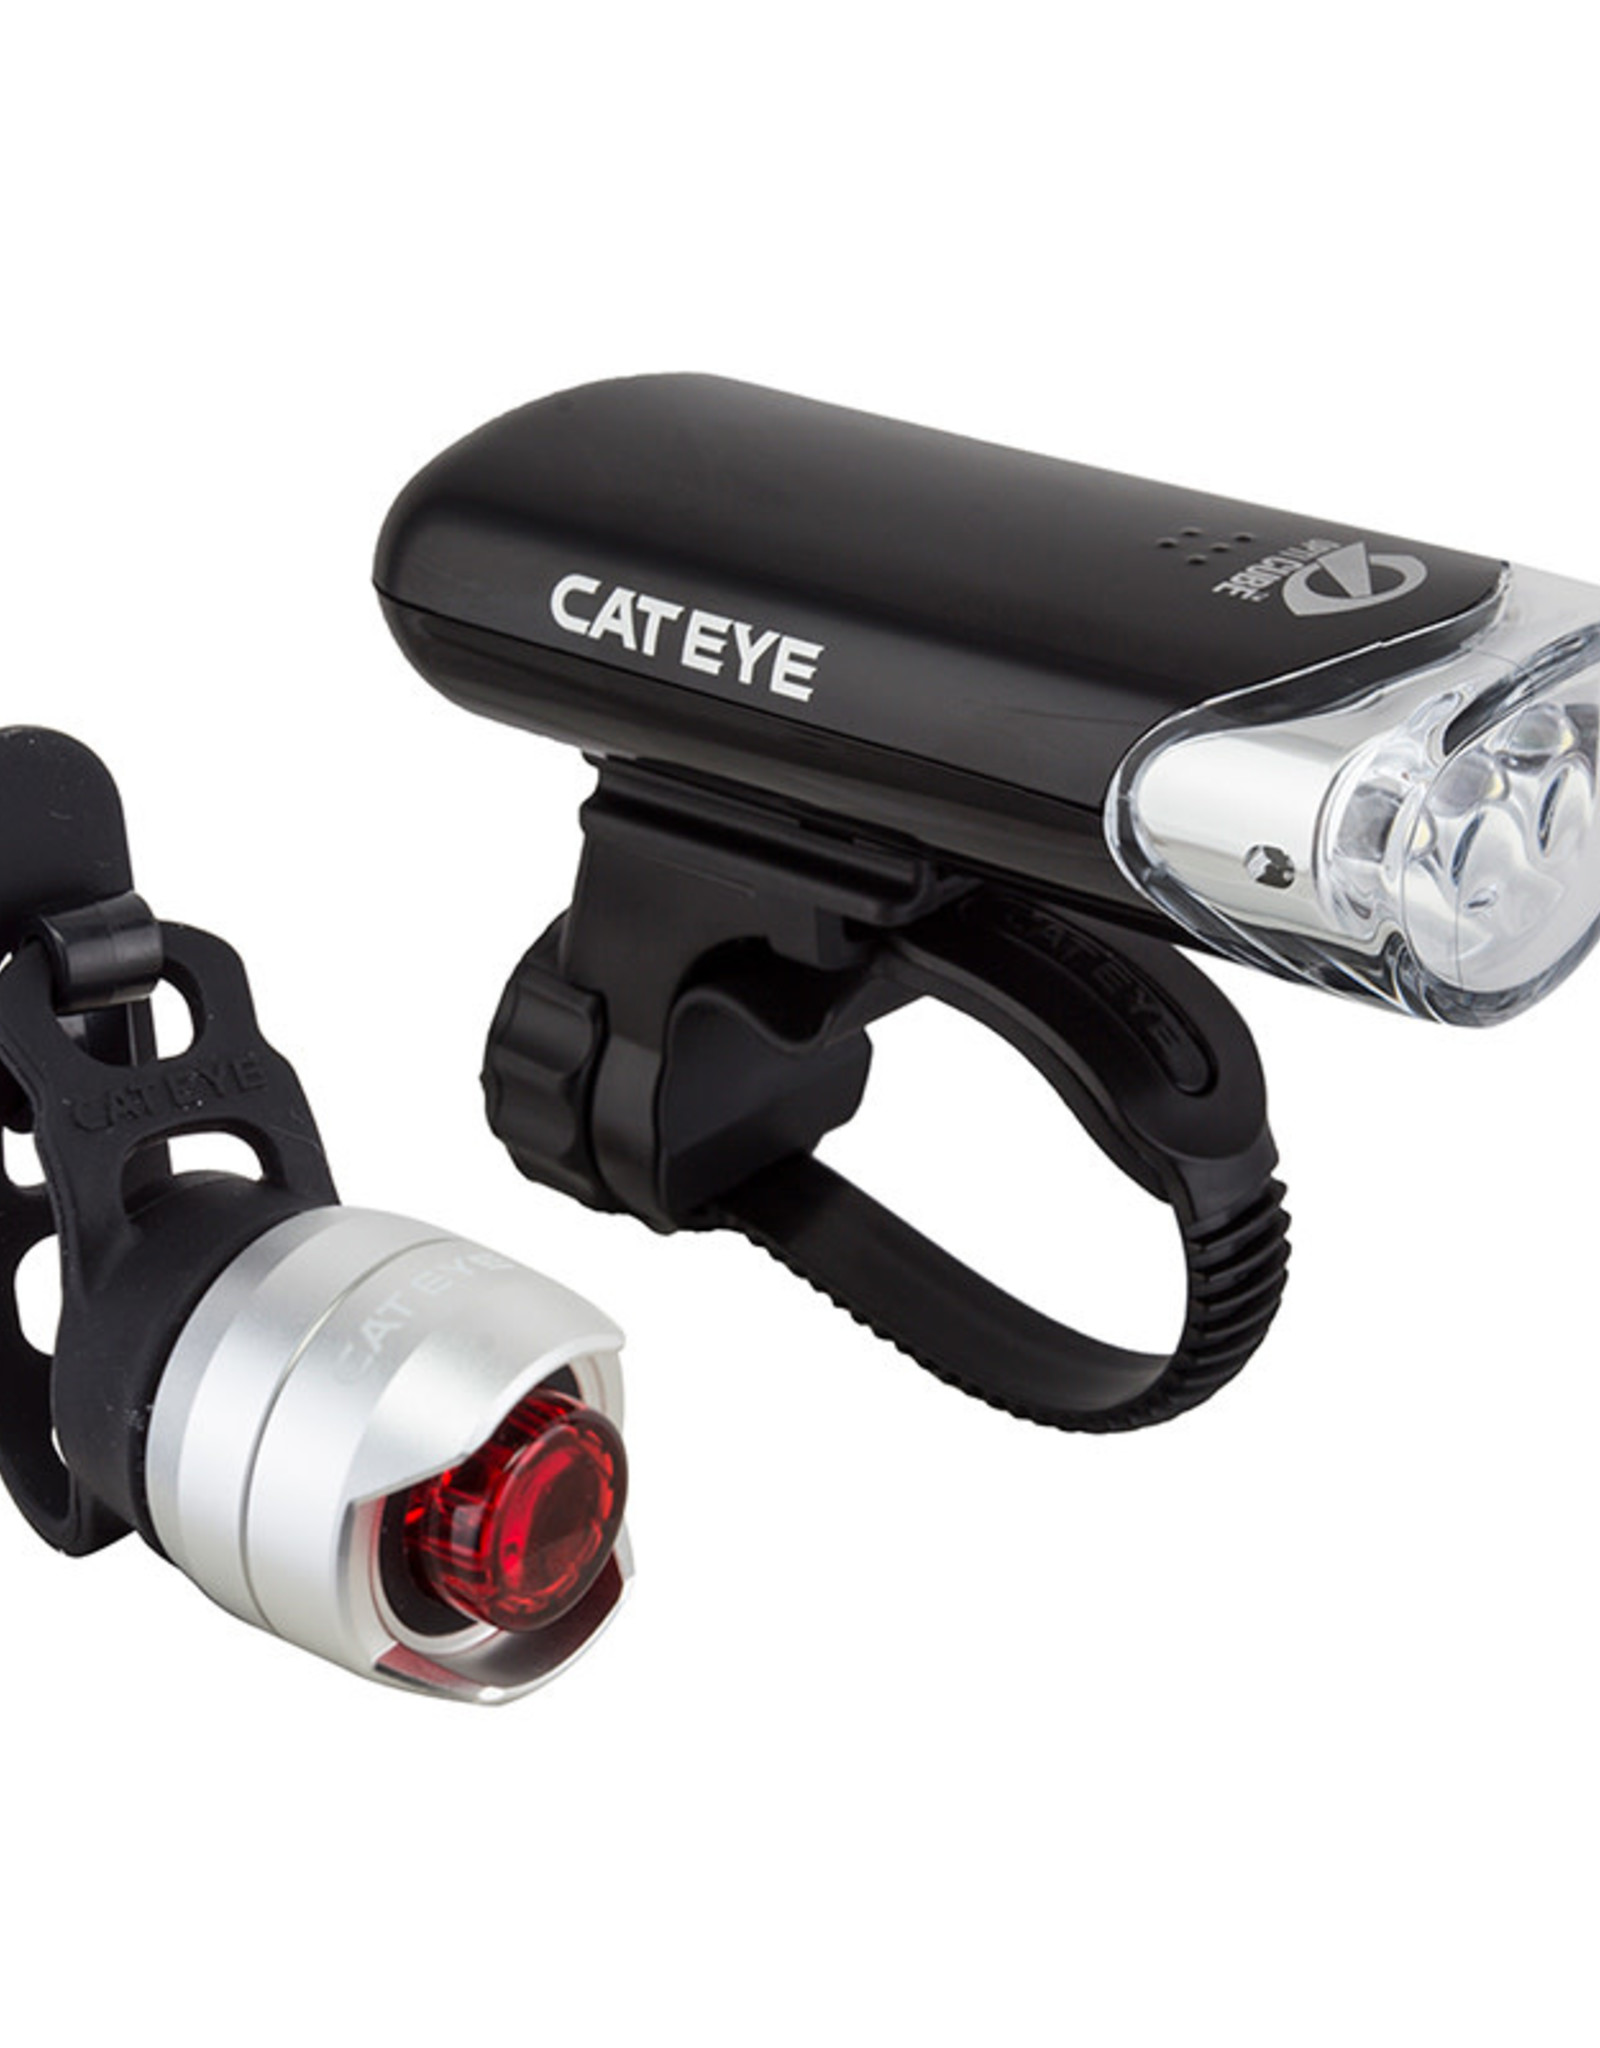 CATEYE Cateye Combo Light Set HL-EL135N SL-LD160-R ORB  Black